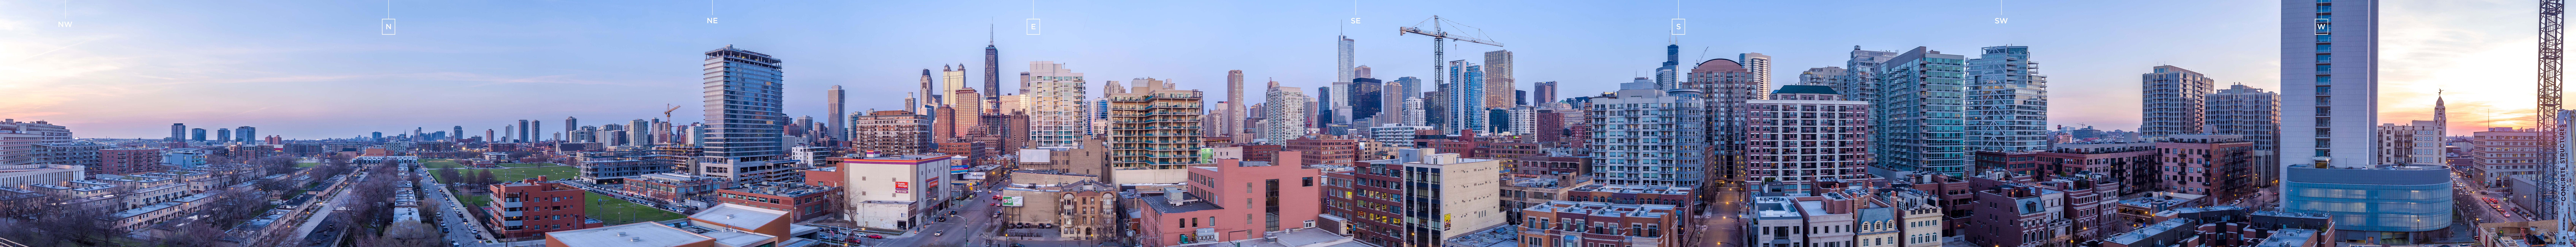 The Hudson 360° Views - SEE CHICAGO FROM A NEW PERSPECTIVE - floor 1 to 9